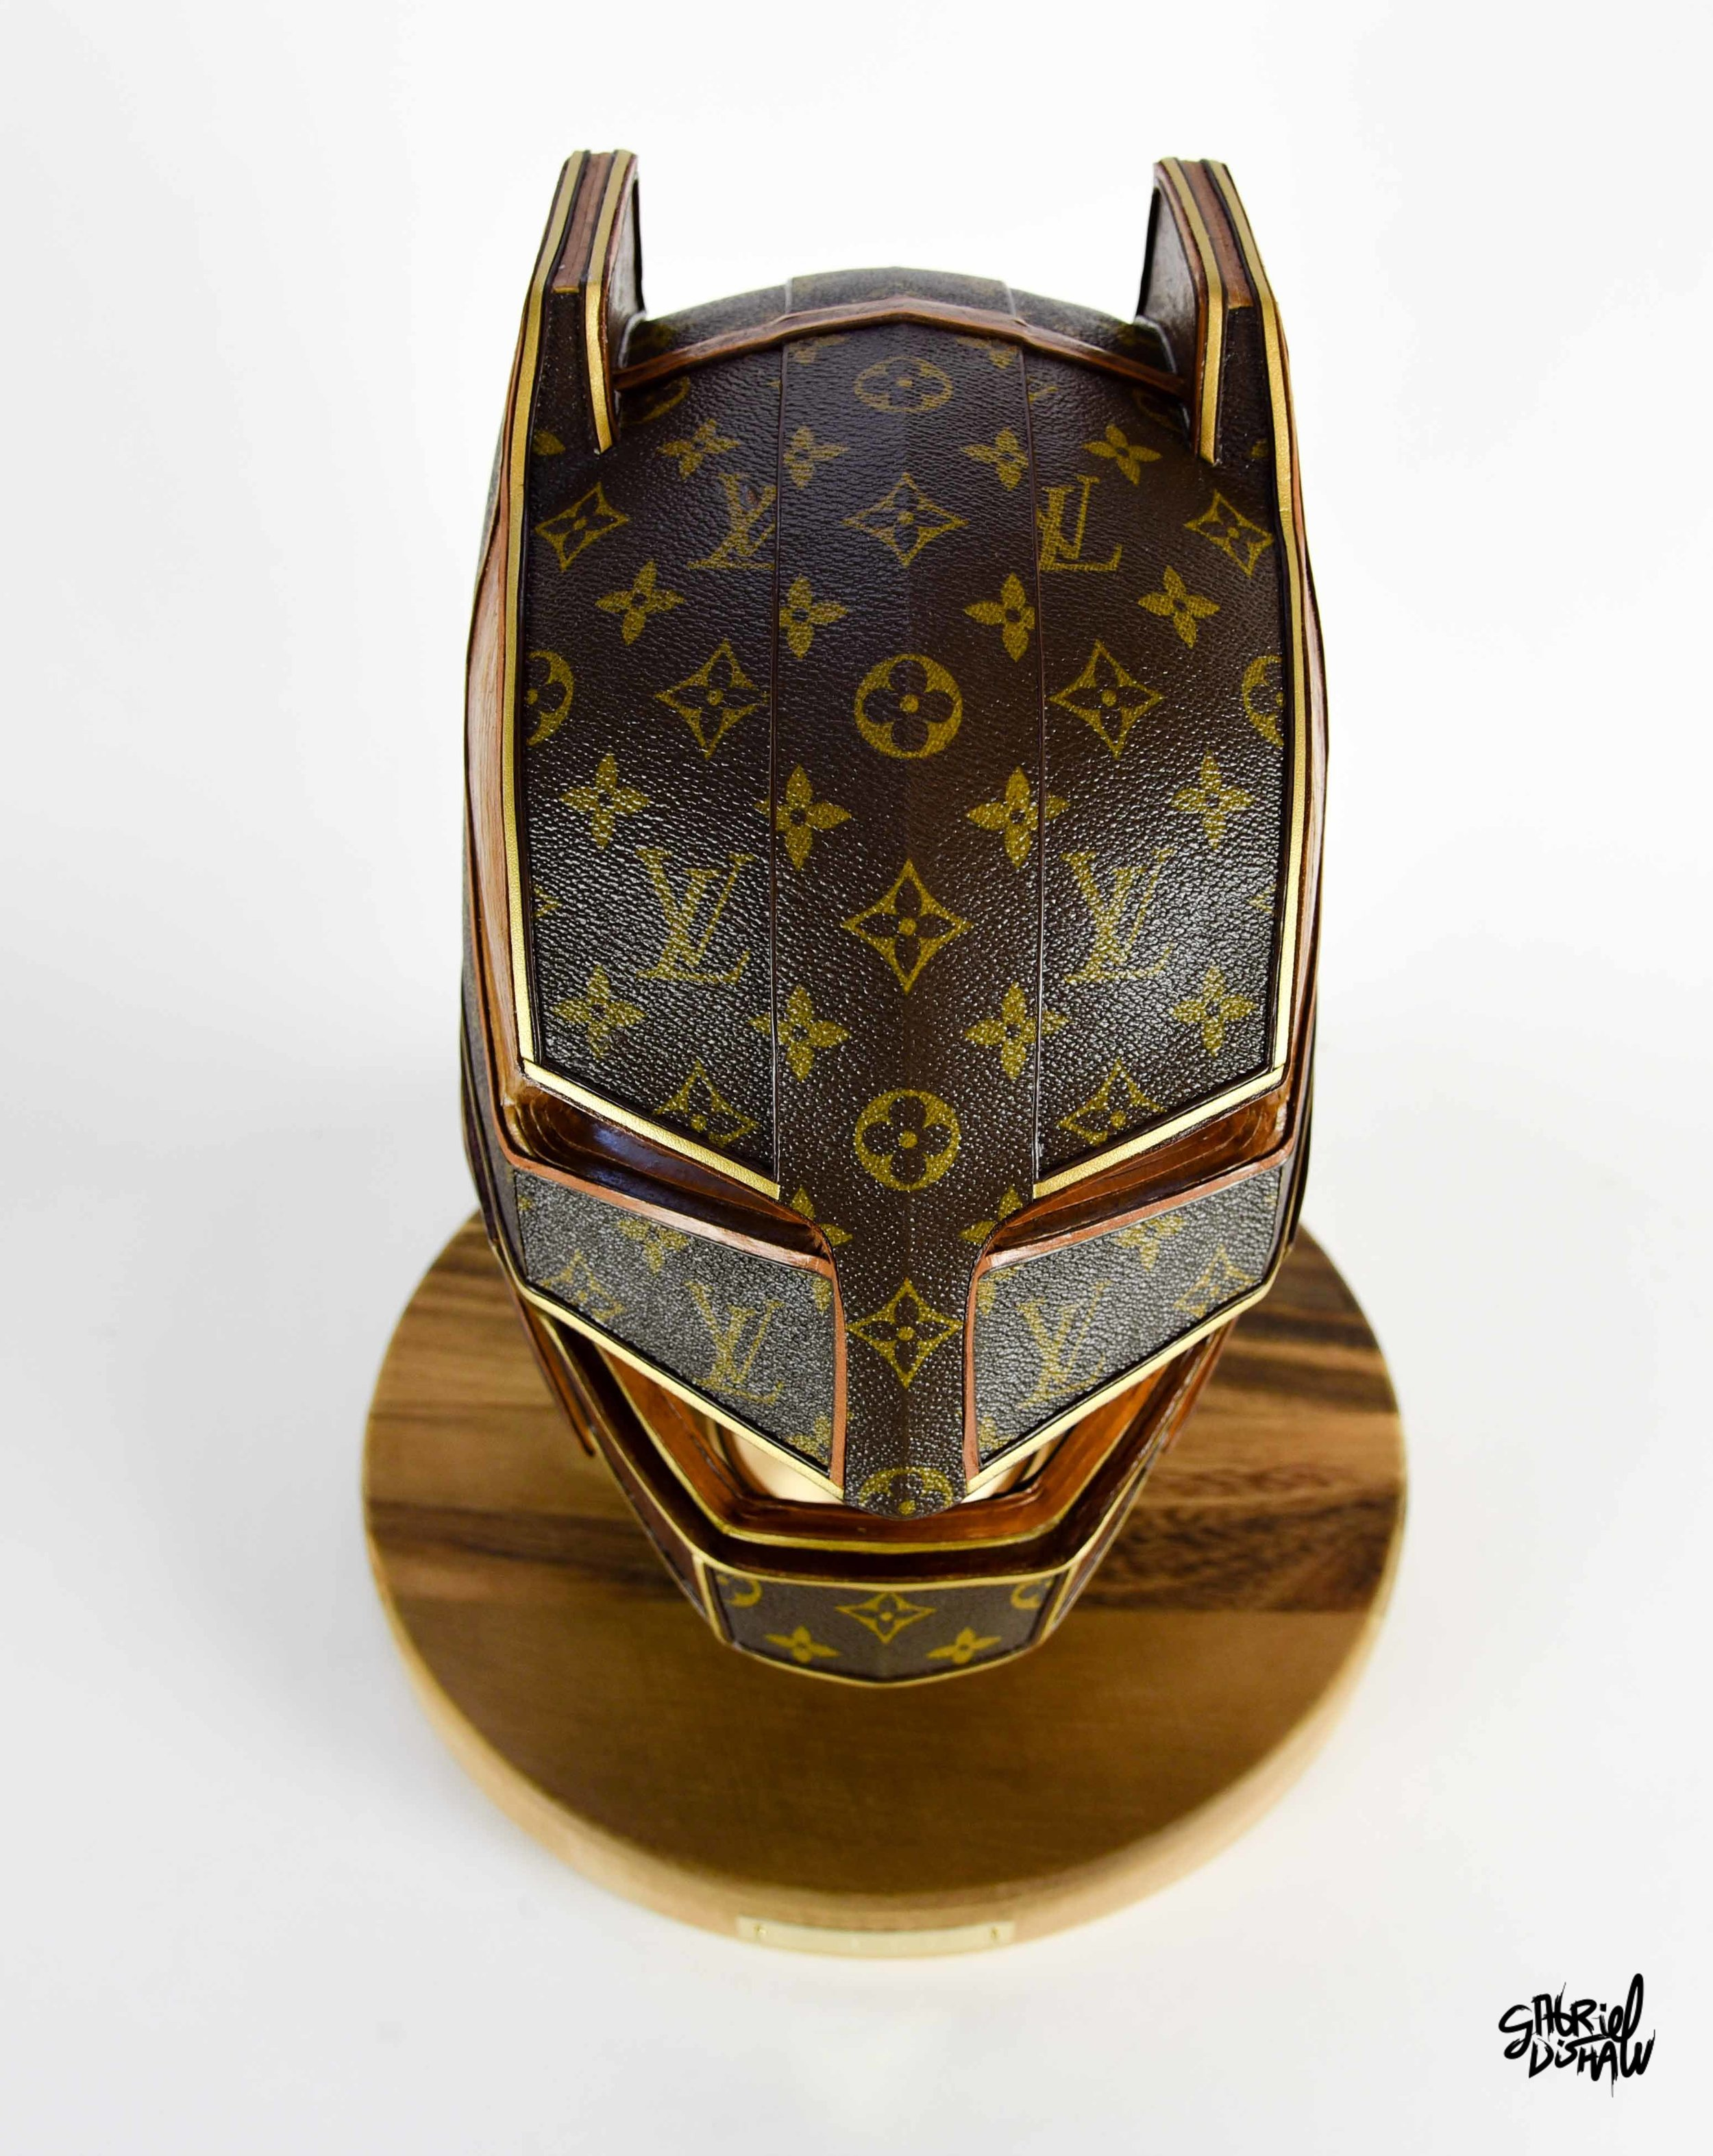 Gabriel Dishaw Vuitton Knight (62 of 164).jpg